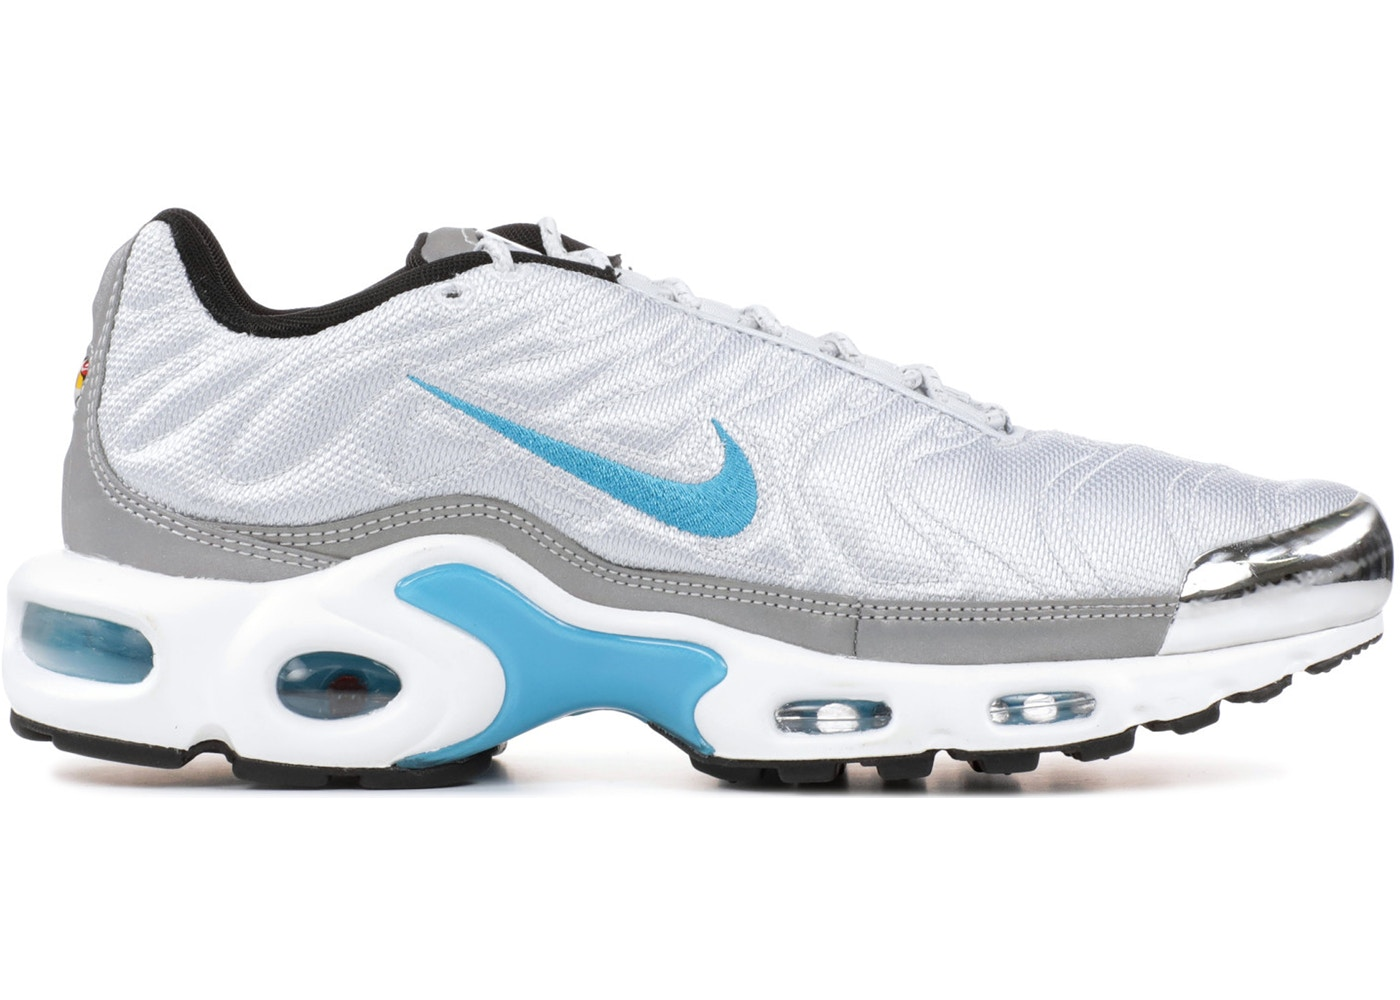 0440f928c4 Sell. or Ask. Size: 12W. View All Bids. Air Max Plus Quilted Pure Platinum  ...